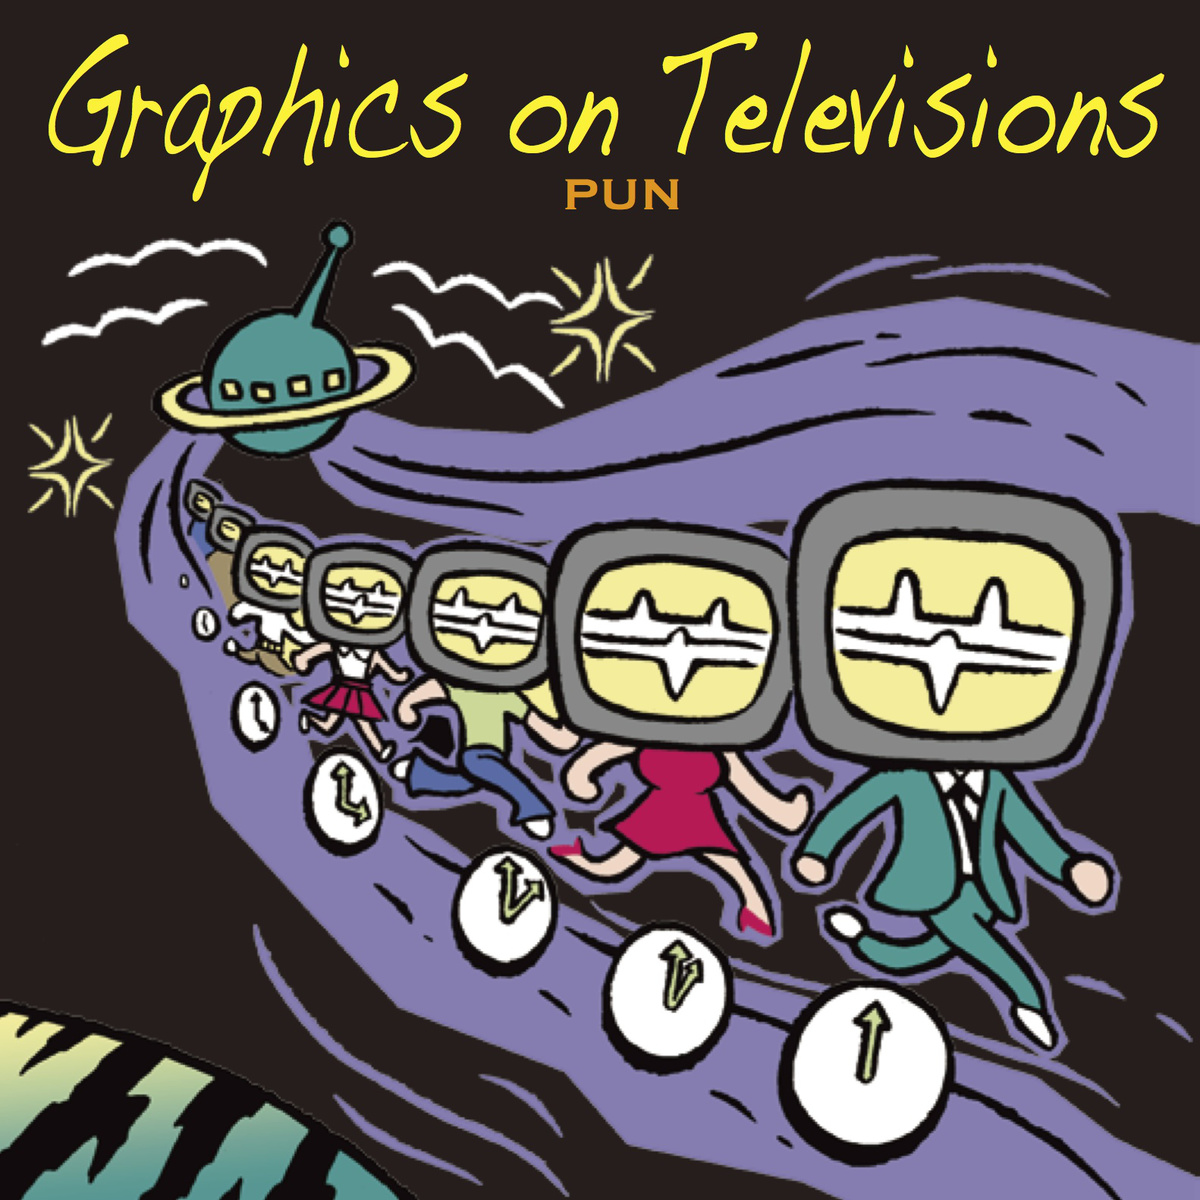 Graphics on Televisions - Pun